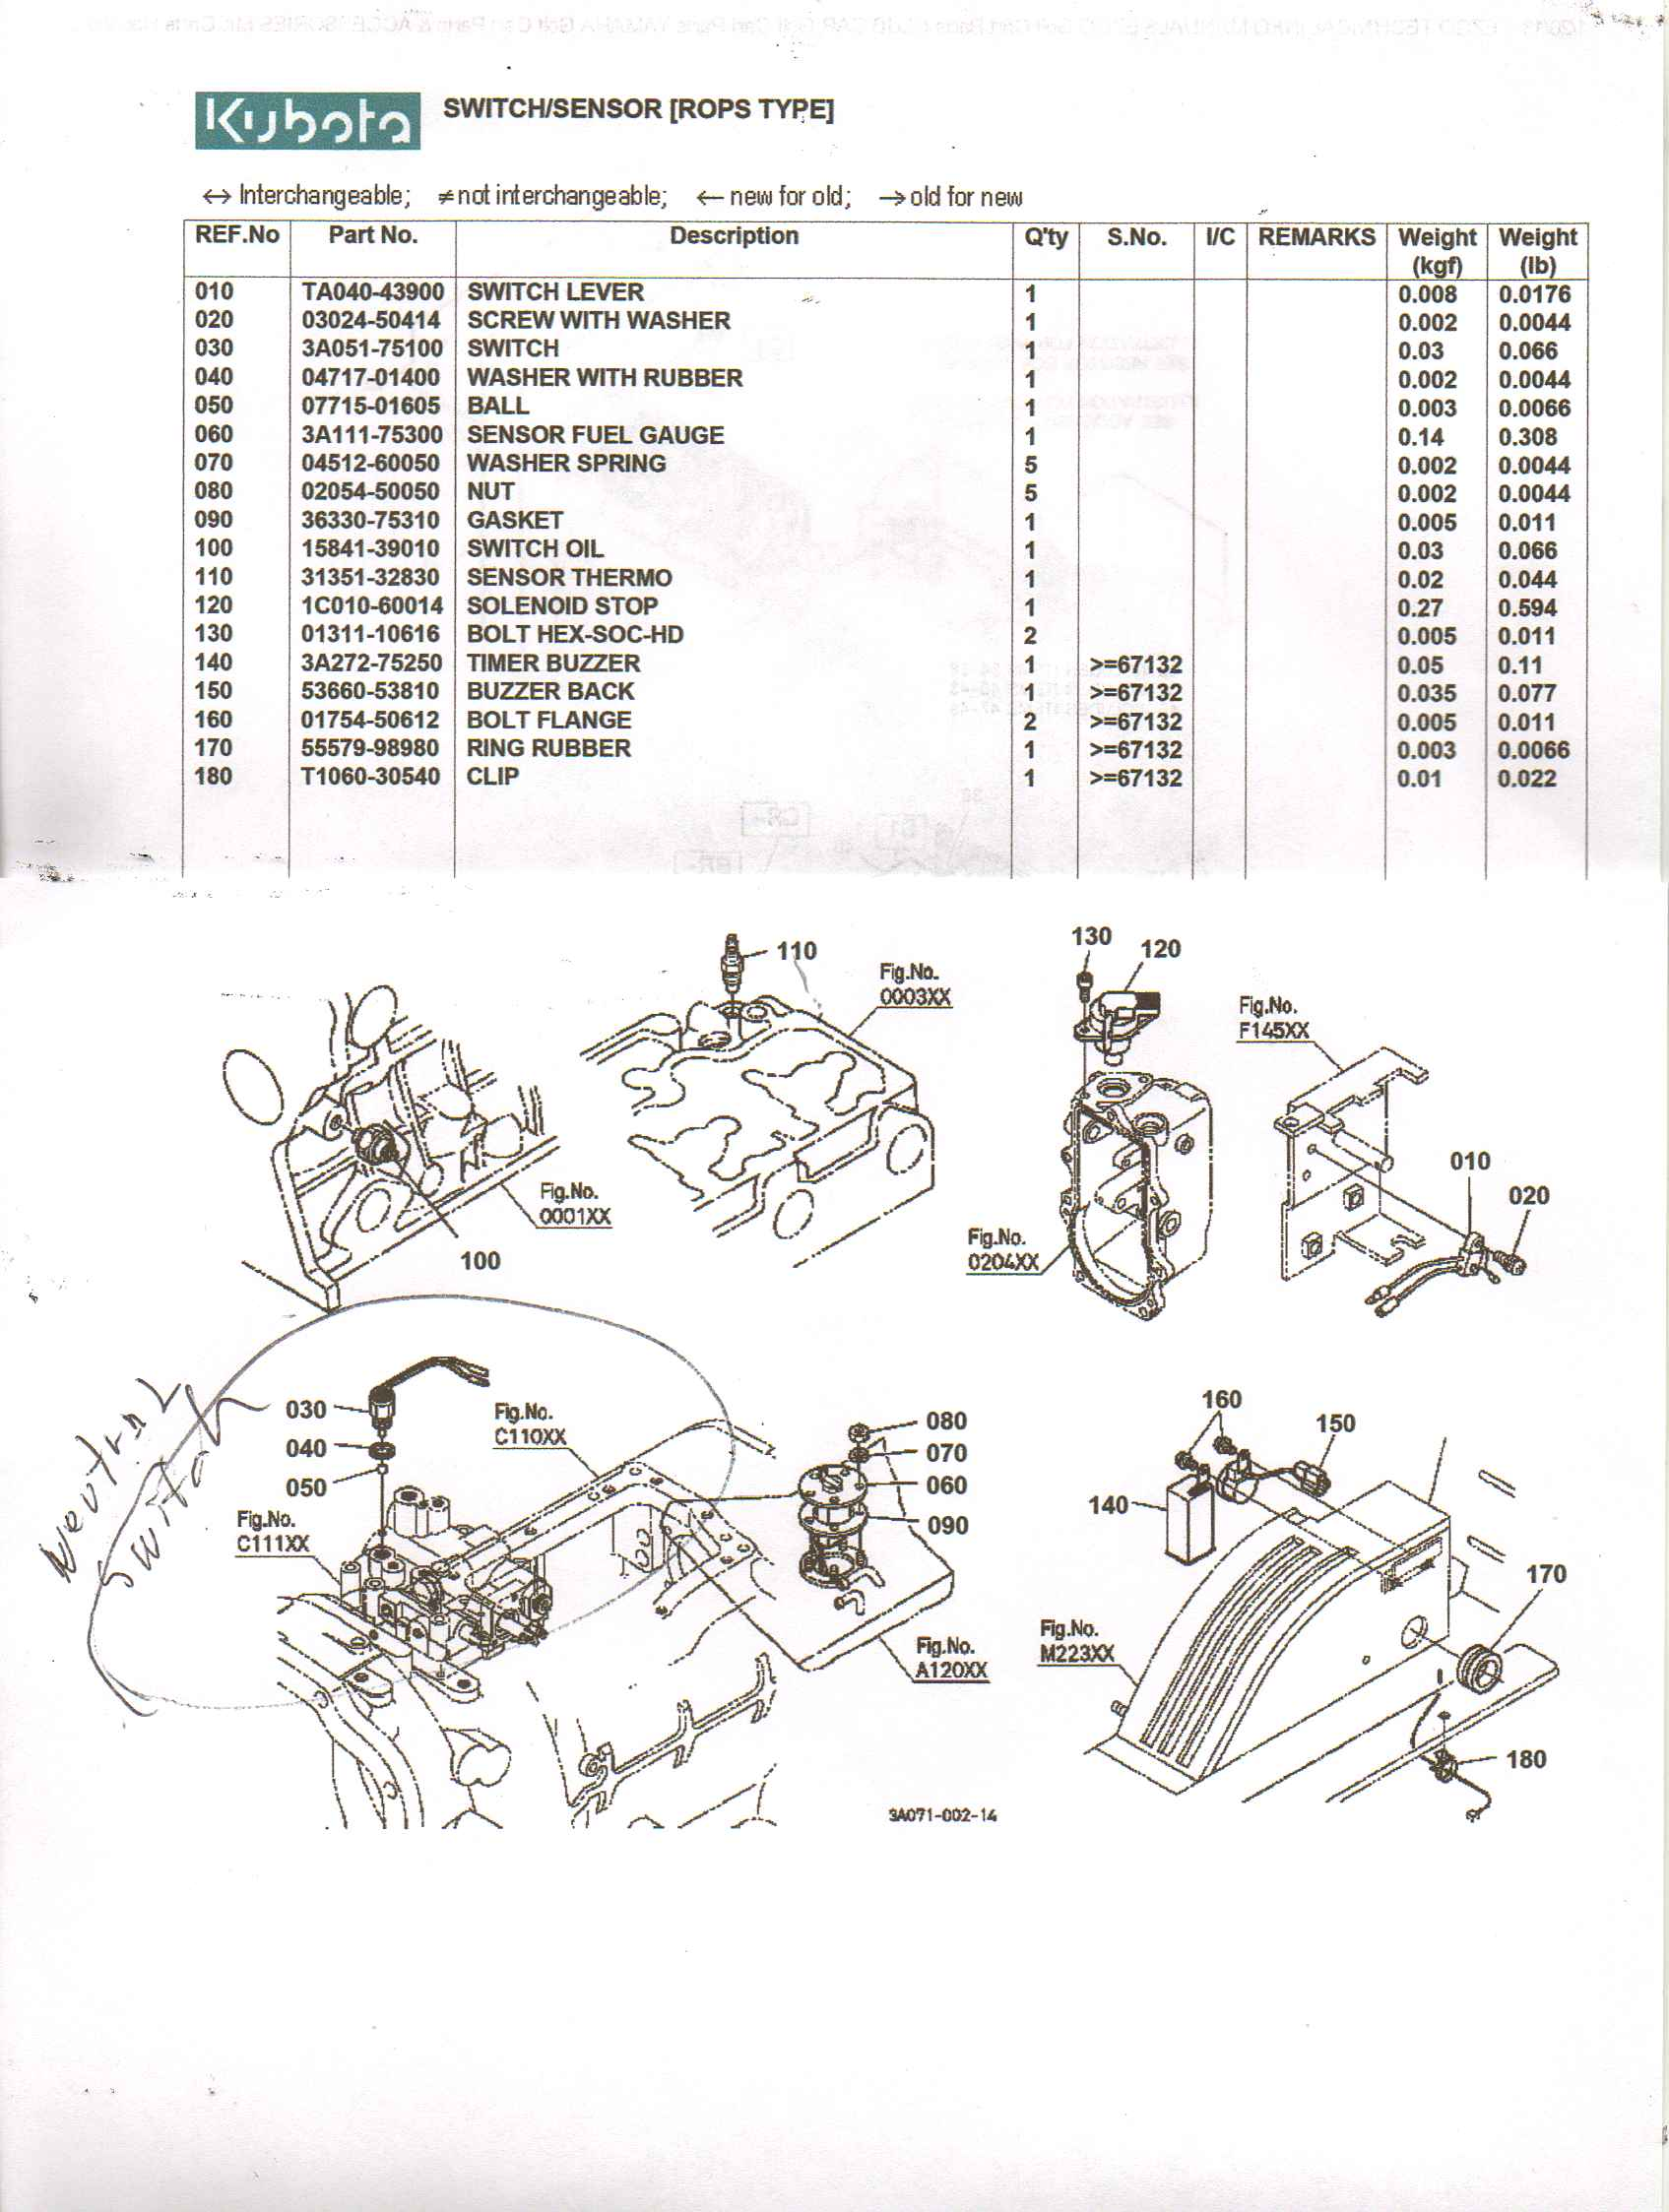 B G Motor Swap To P Electrical Help Archive Weekend For John Deere B G Wiring Diagram further Kubota M Switch together with John Deere La C G Deck Parts Diagram likewise Kawasaki Fd V Parts List And Diagram As Ereplacementparts Within John Deere Parts Diagram besides John Deere C Deck Parts Diagram. on john deere 345 kawasaki wiring diagrams